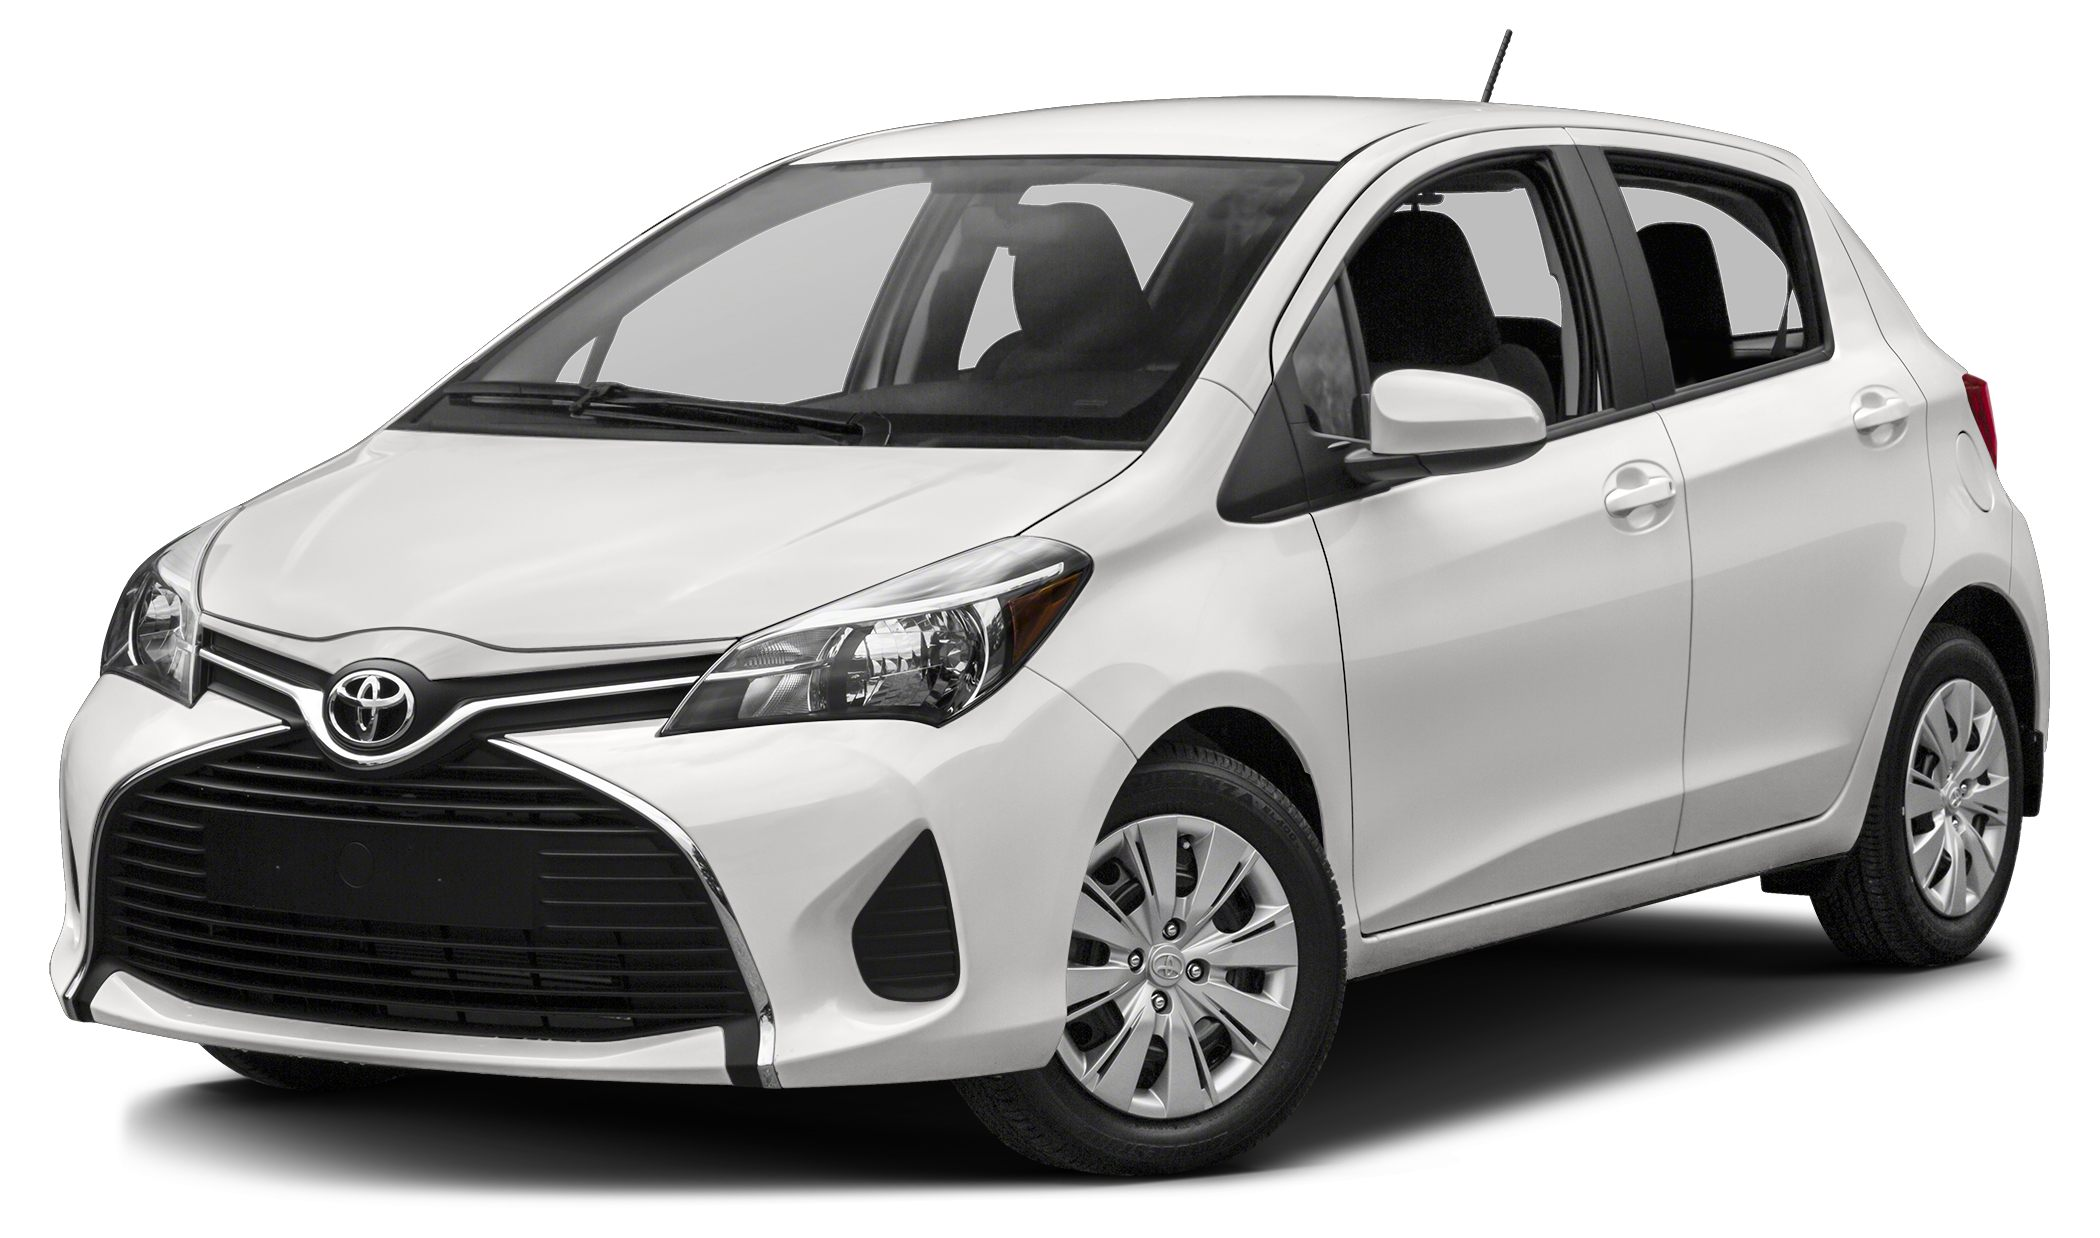 2017 Toyota Yaris L Westboro Toyota is proud to present HASSLE FREE BUYING EXPERIENCE with upfront